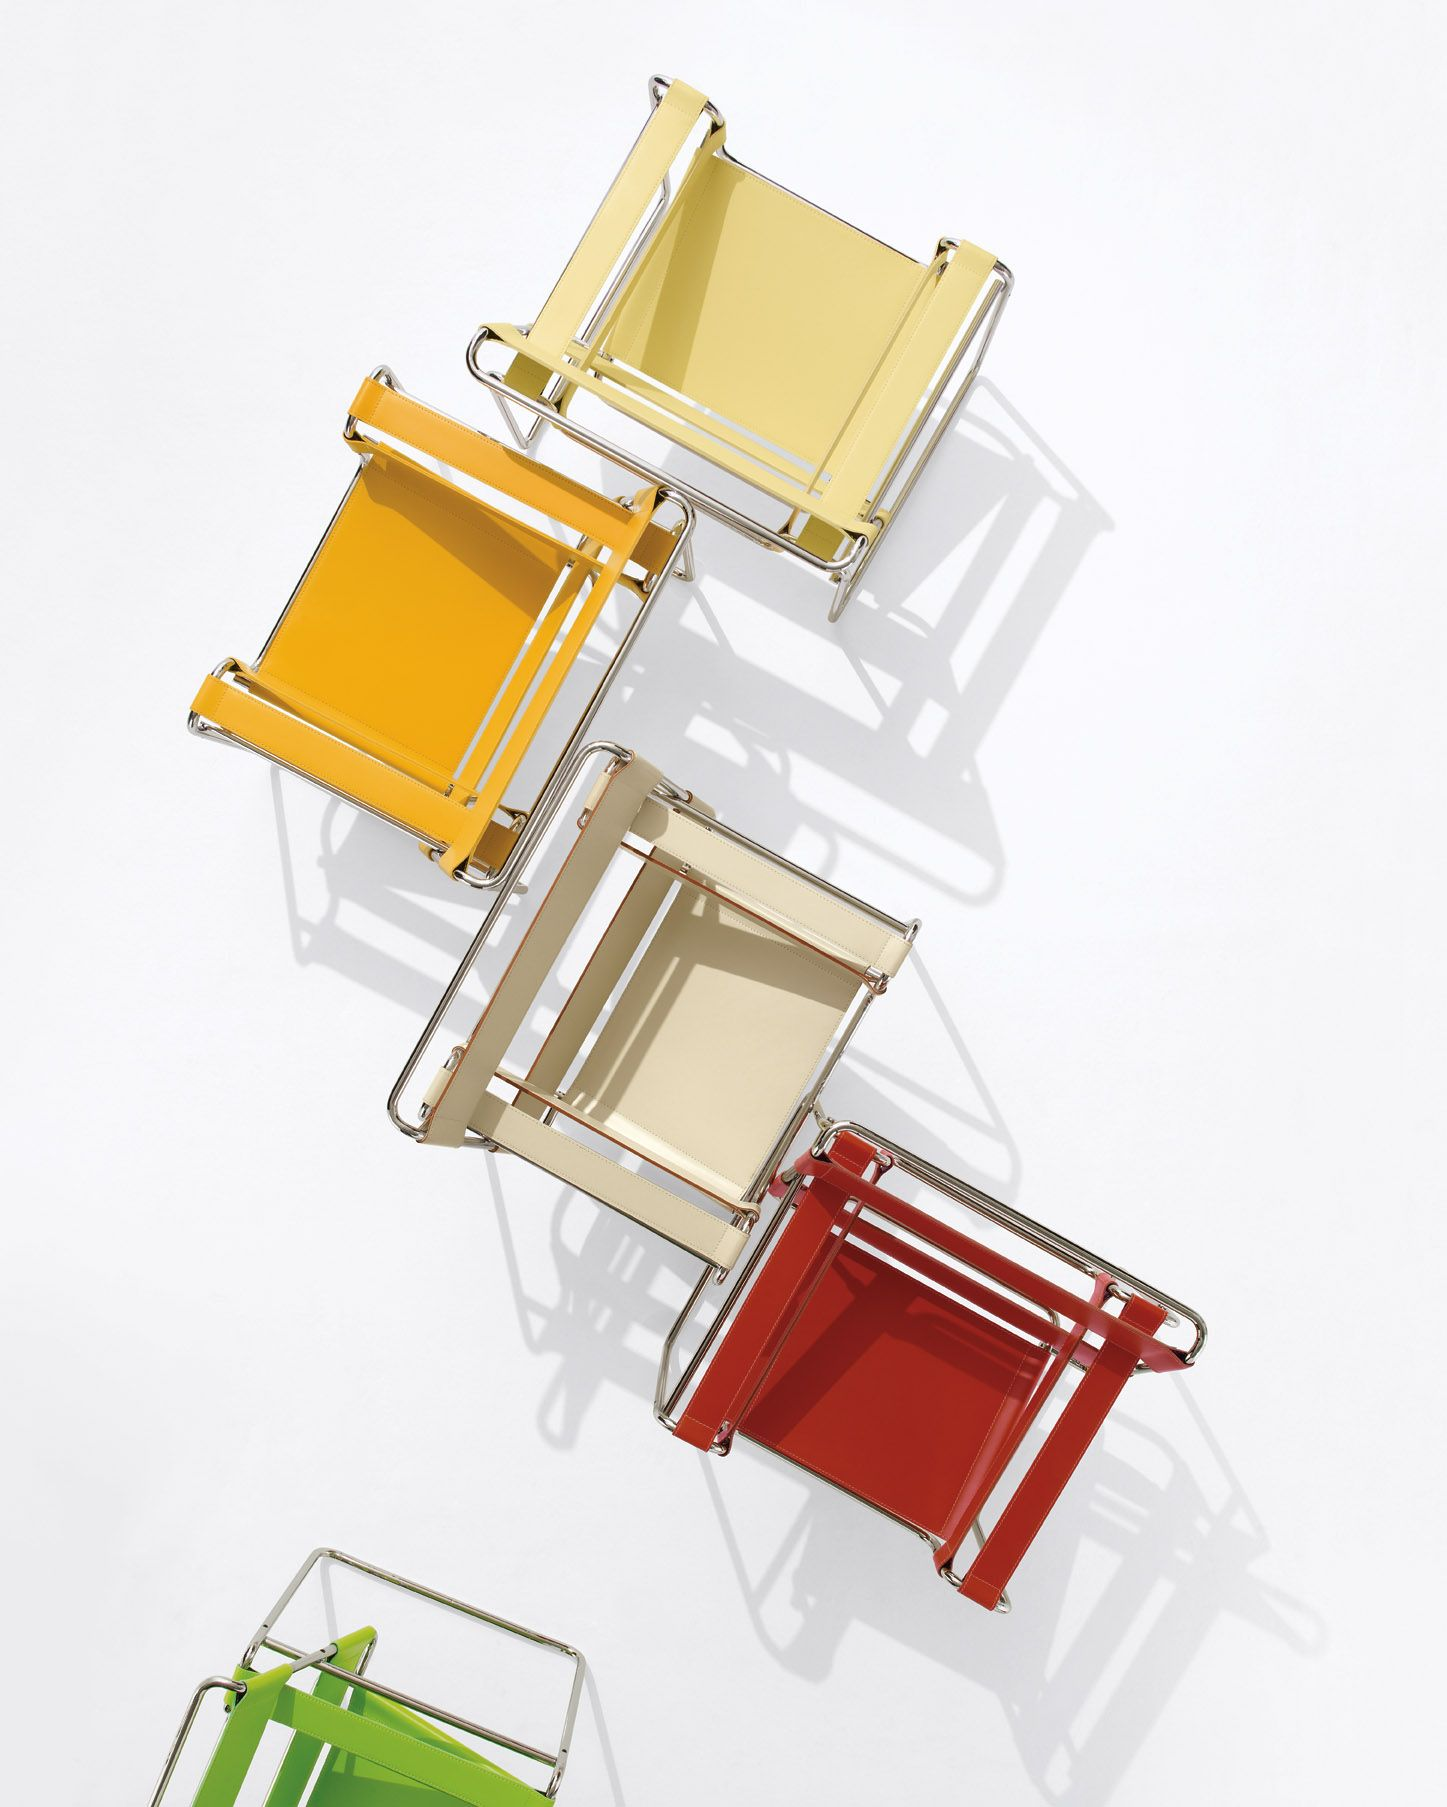 Marcel Breuers Bauhaus Icon, The Wassily Chair, In A New